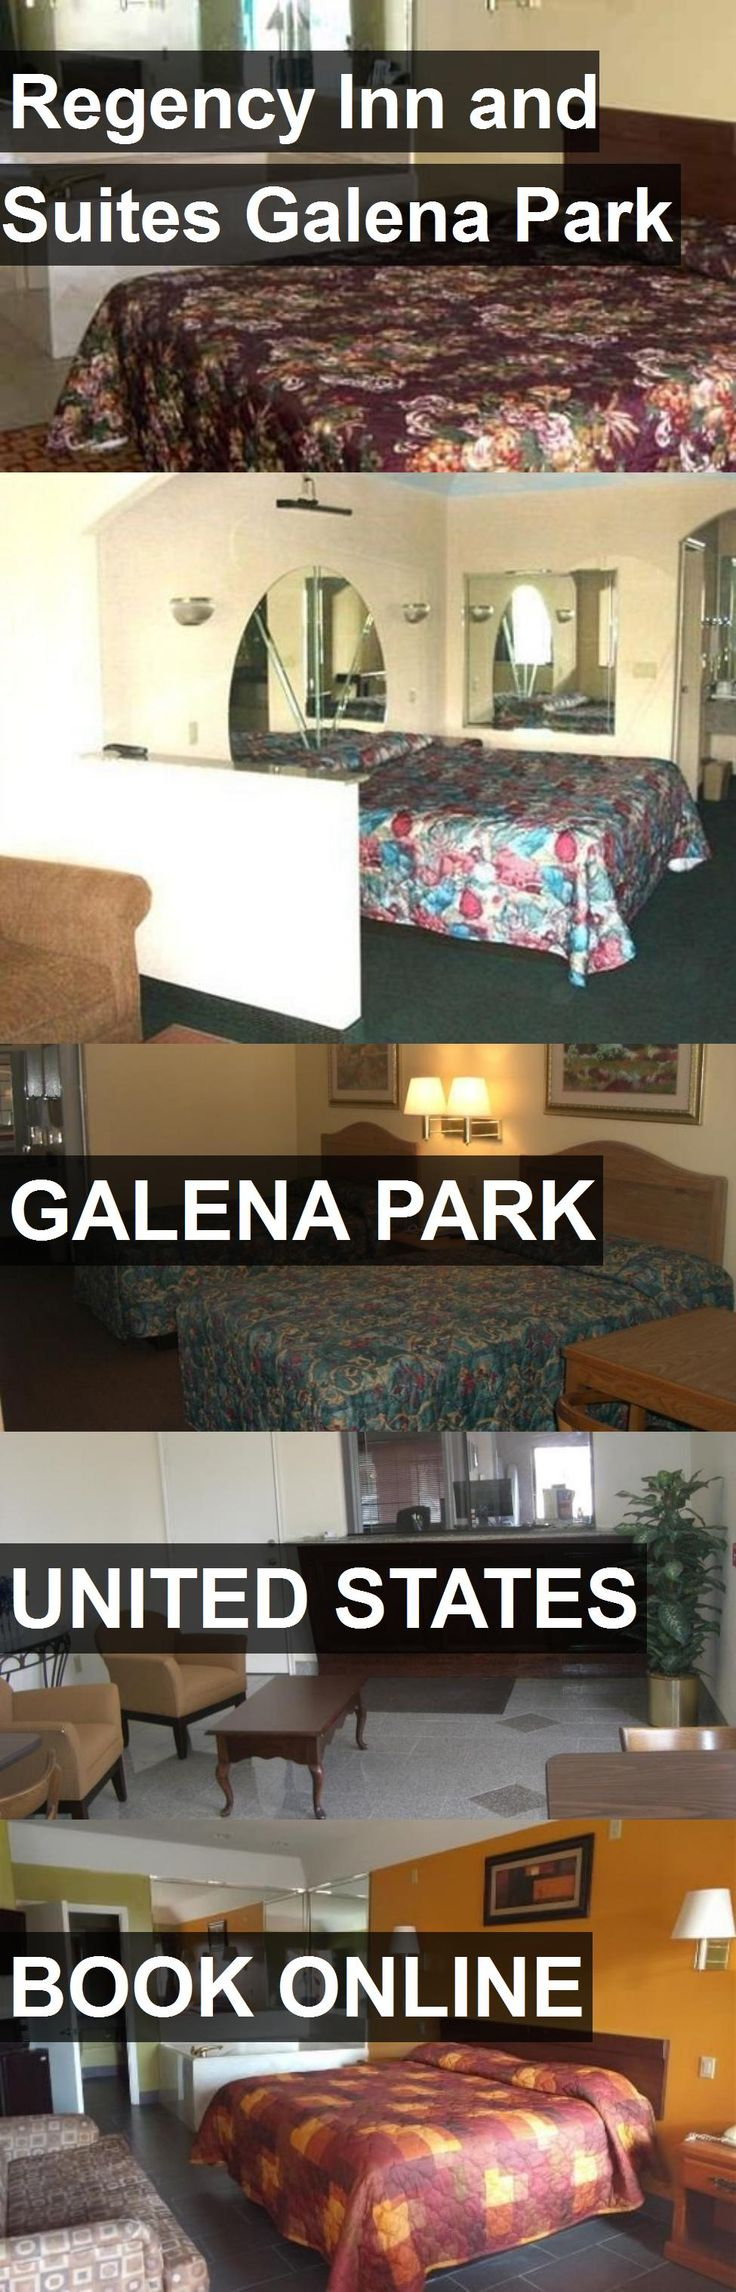 Hotel Regency Inn and Suites Galena Park in Galena Park, United States. For more information, photos, reviews and best prices please follow the link. #UnitedStates #GalenaPark #travel #vacation #hotel